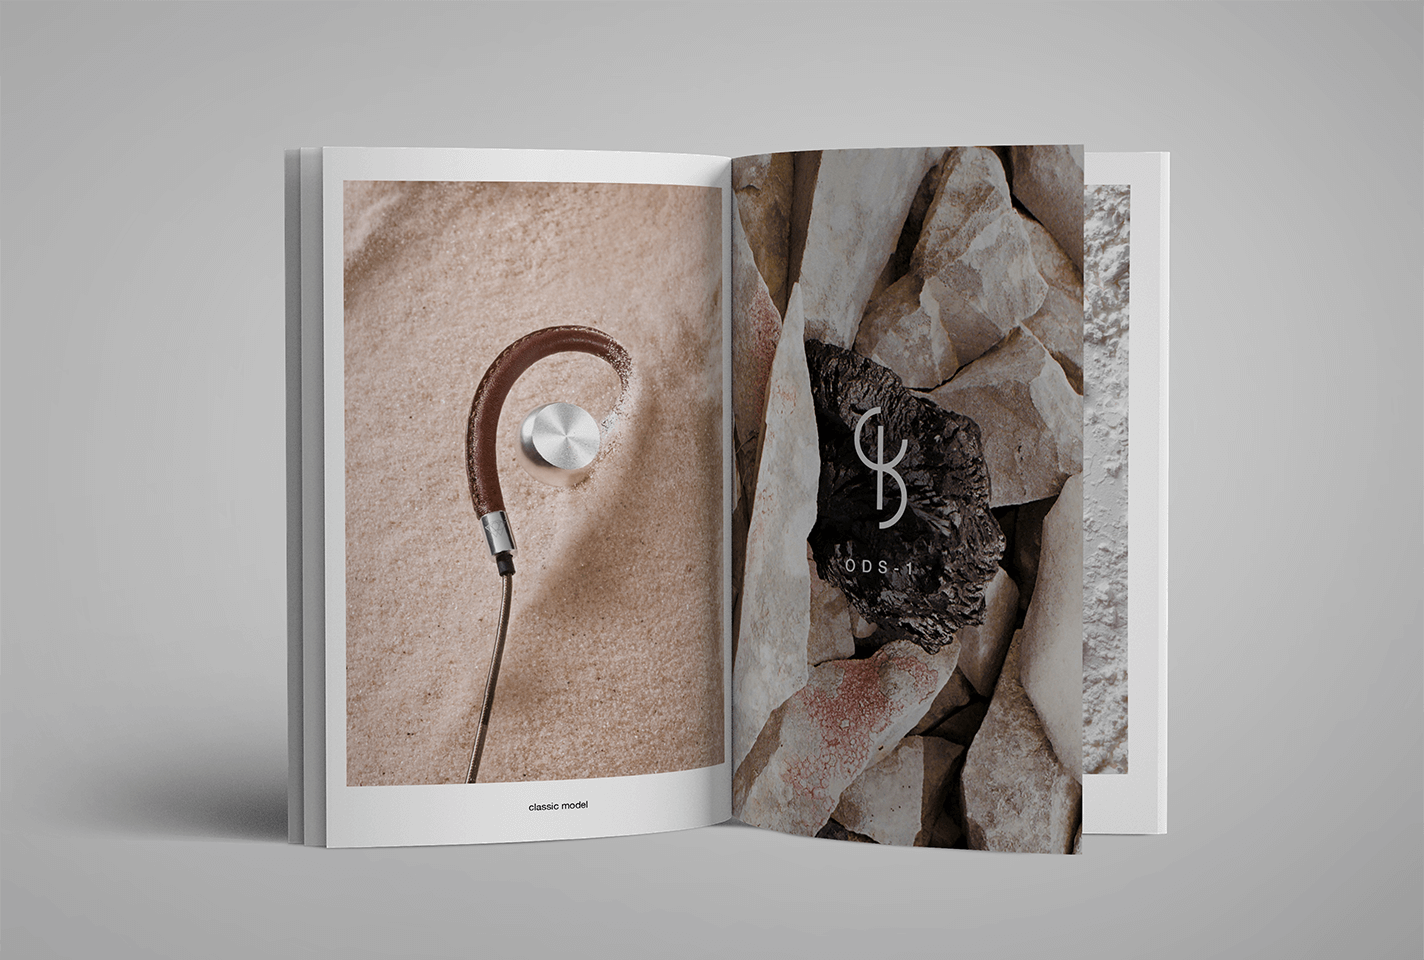 aedle-ods1-branding_08